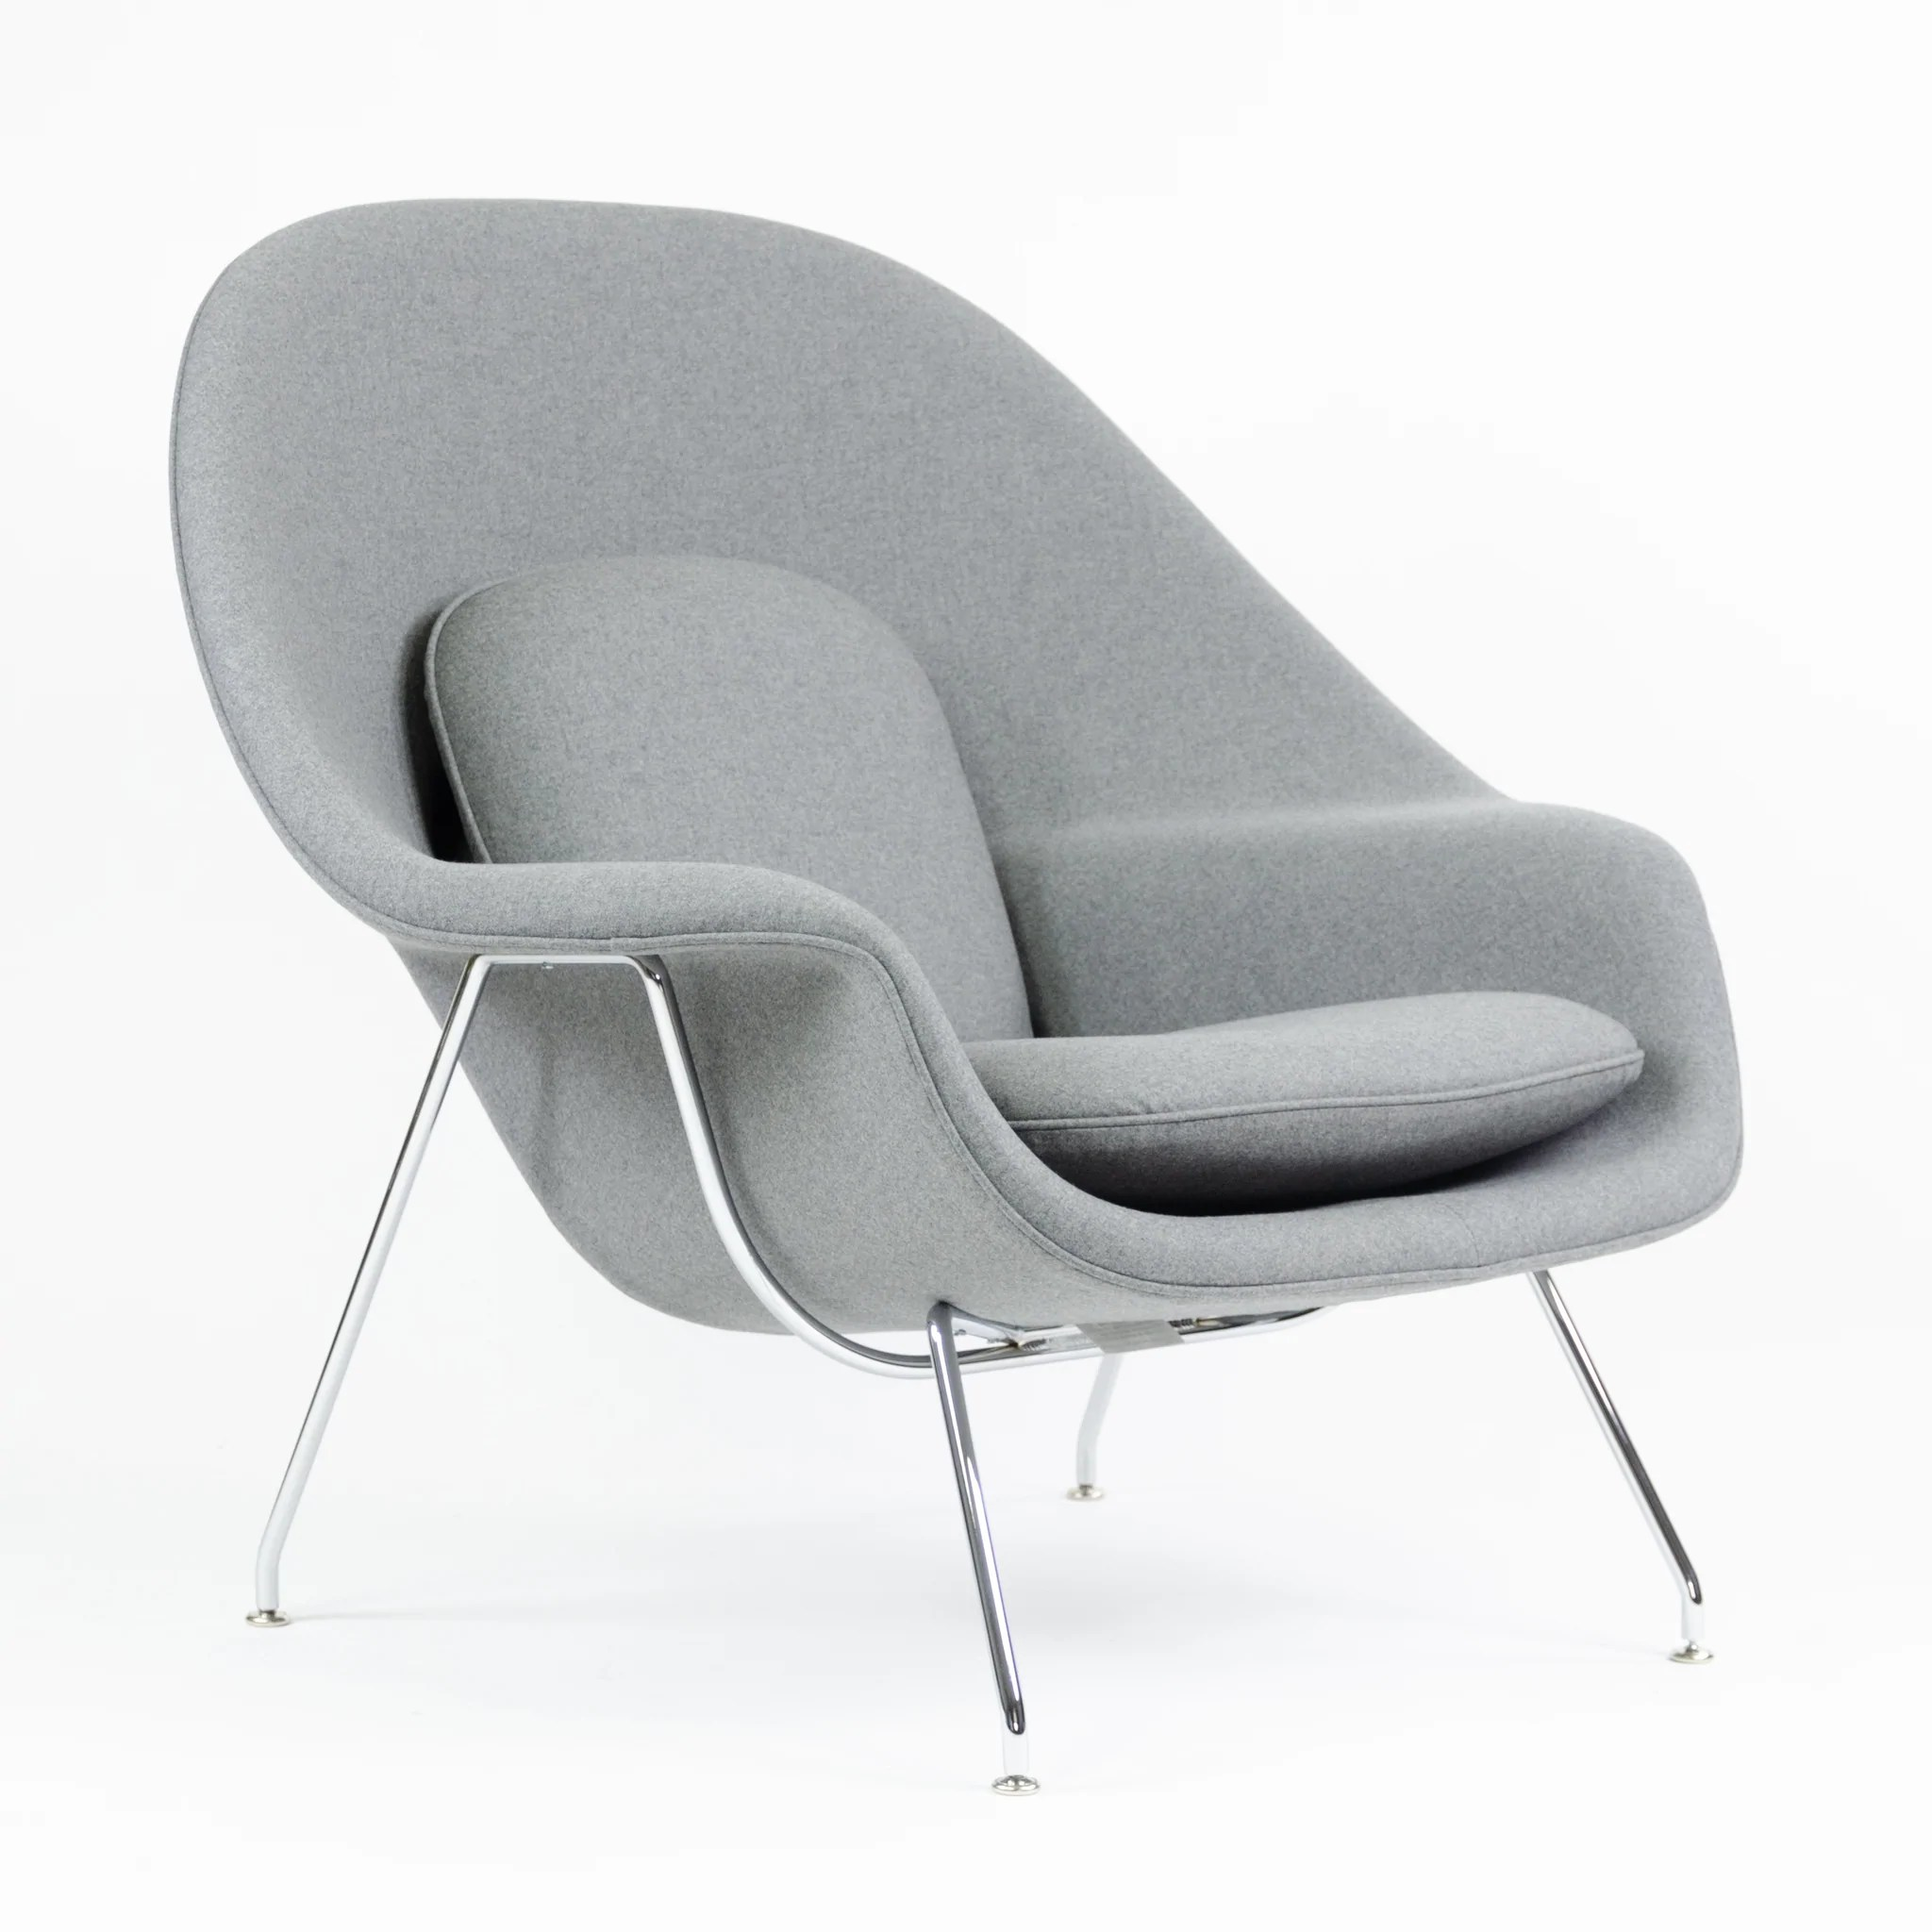 Knoll International Brand New Eero Saarinen Womb Chair Knoll International Full Size Gray Fabric 4x